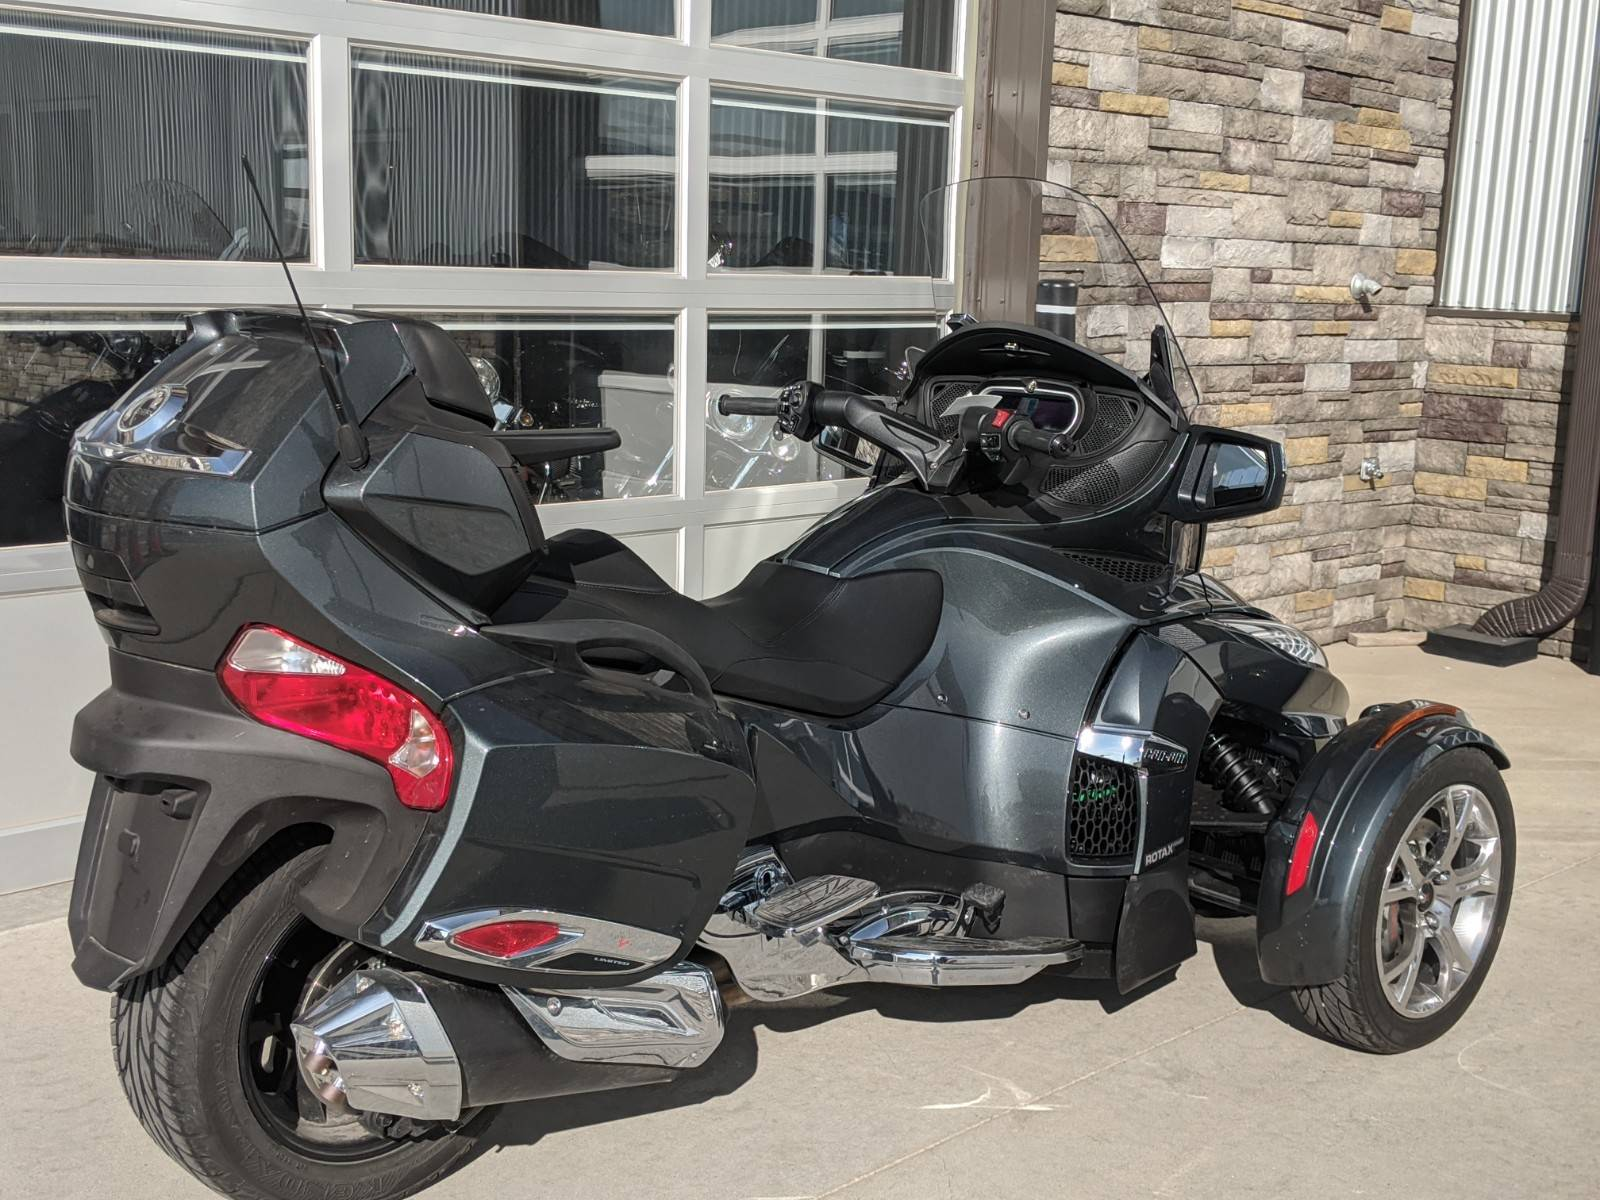 2019 Can-Am Spyder RT Limited in Rapid City, South Dakota - Photo 8